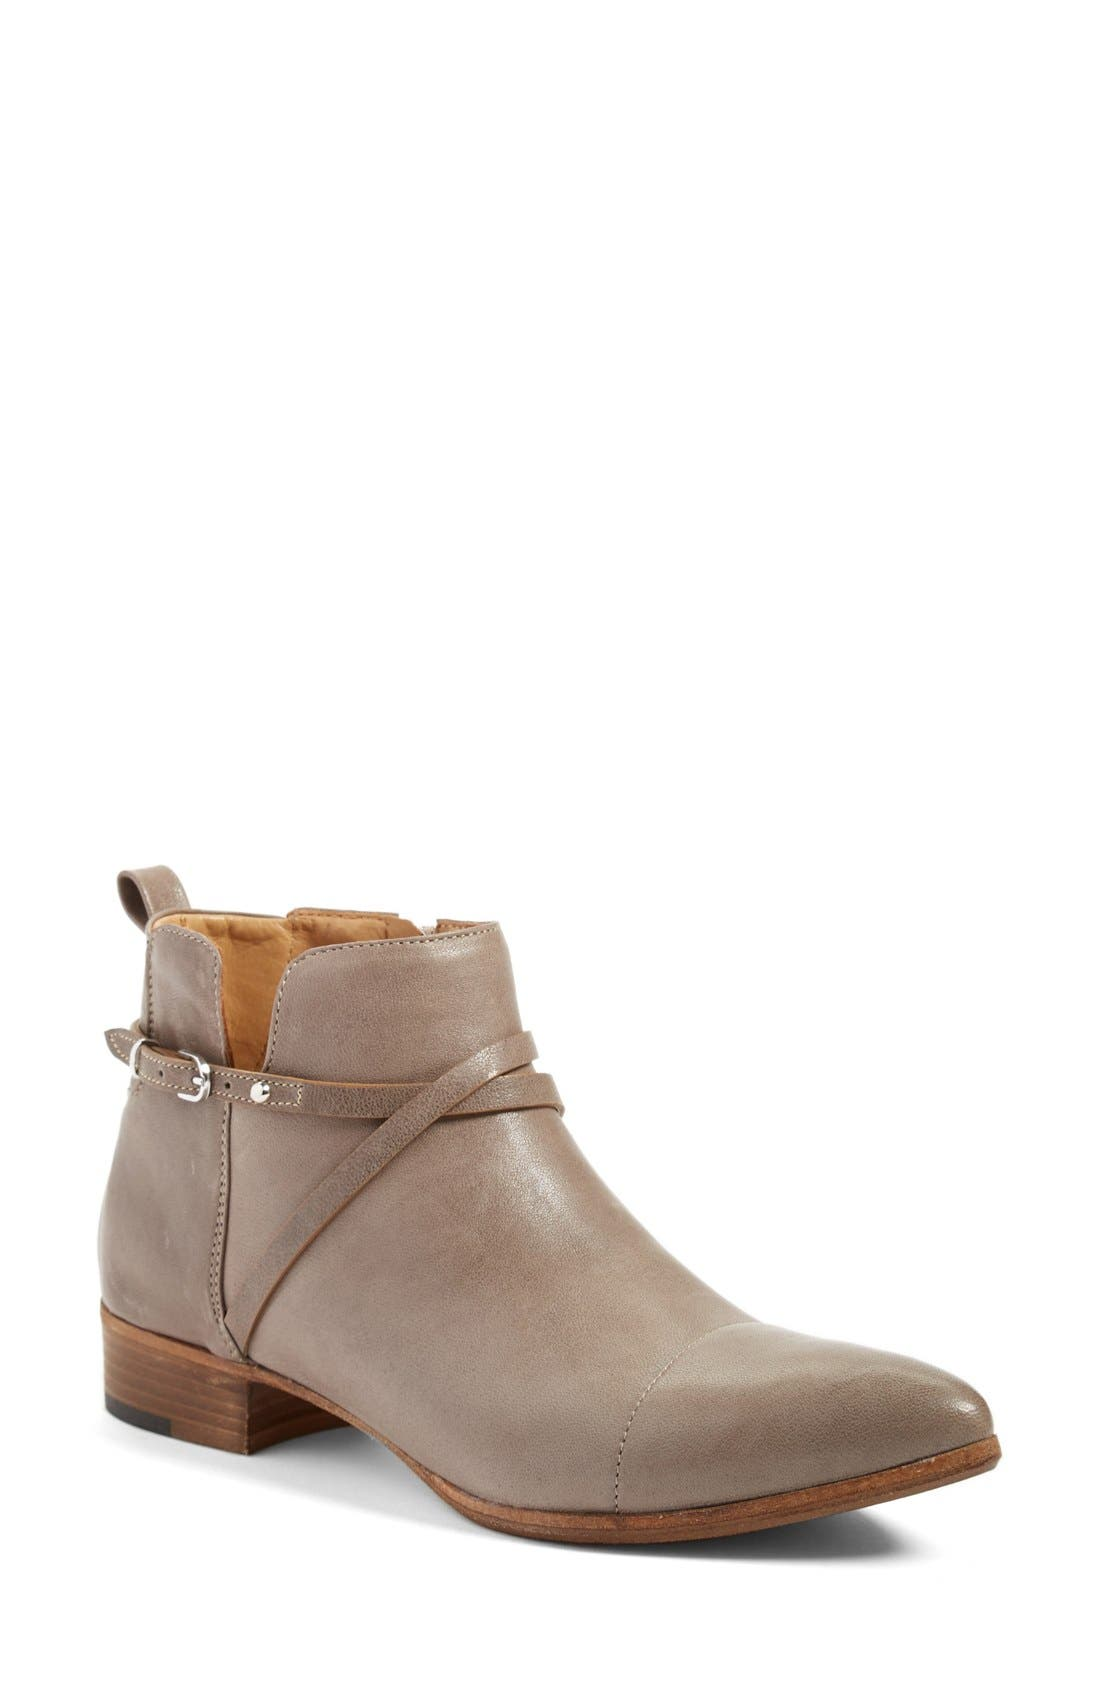 ALBERTO FERMANI 'Mea' Ankle Boot